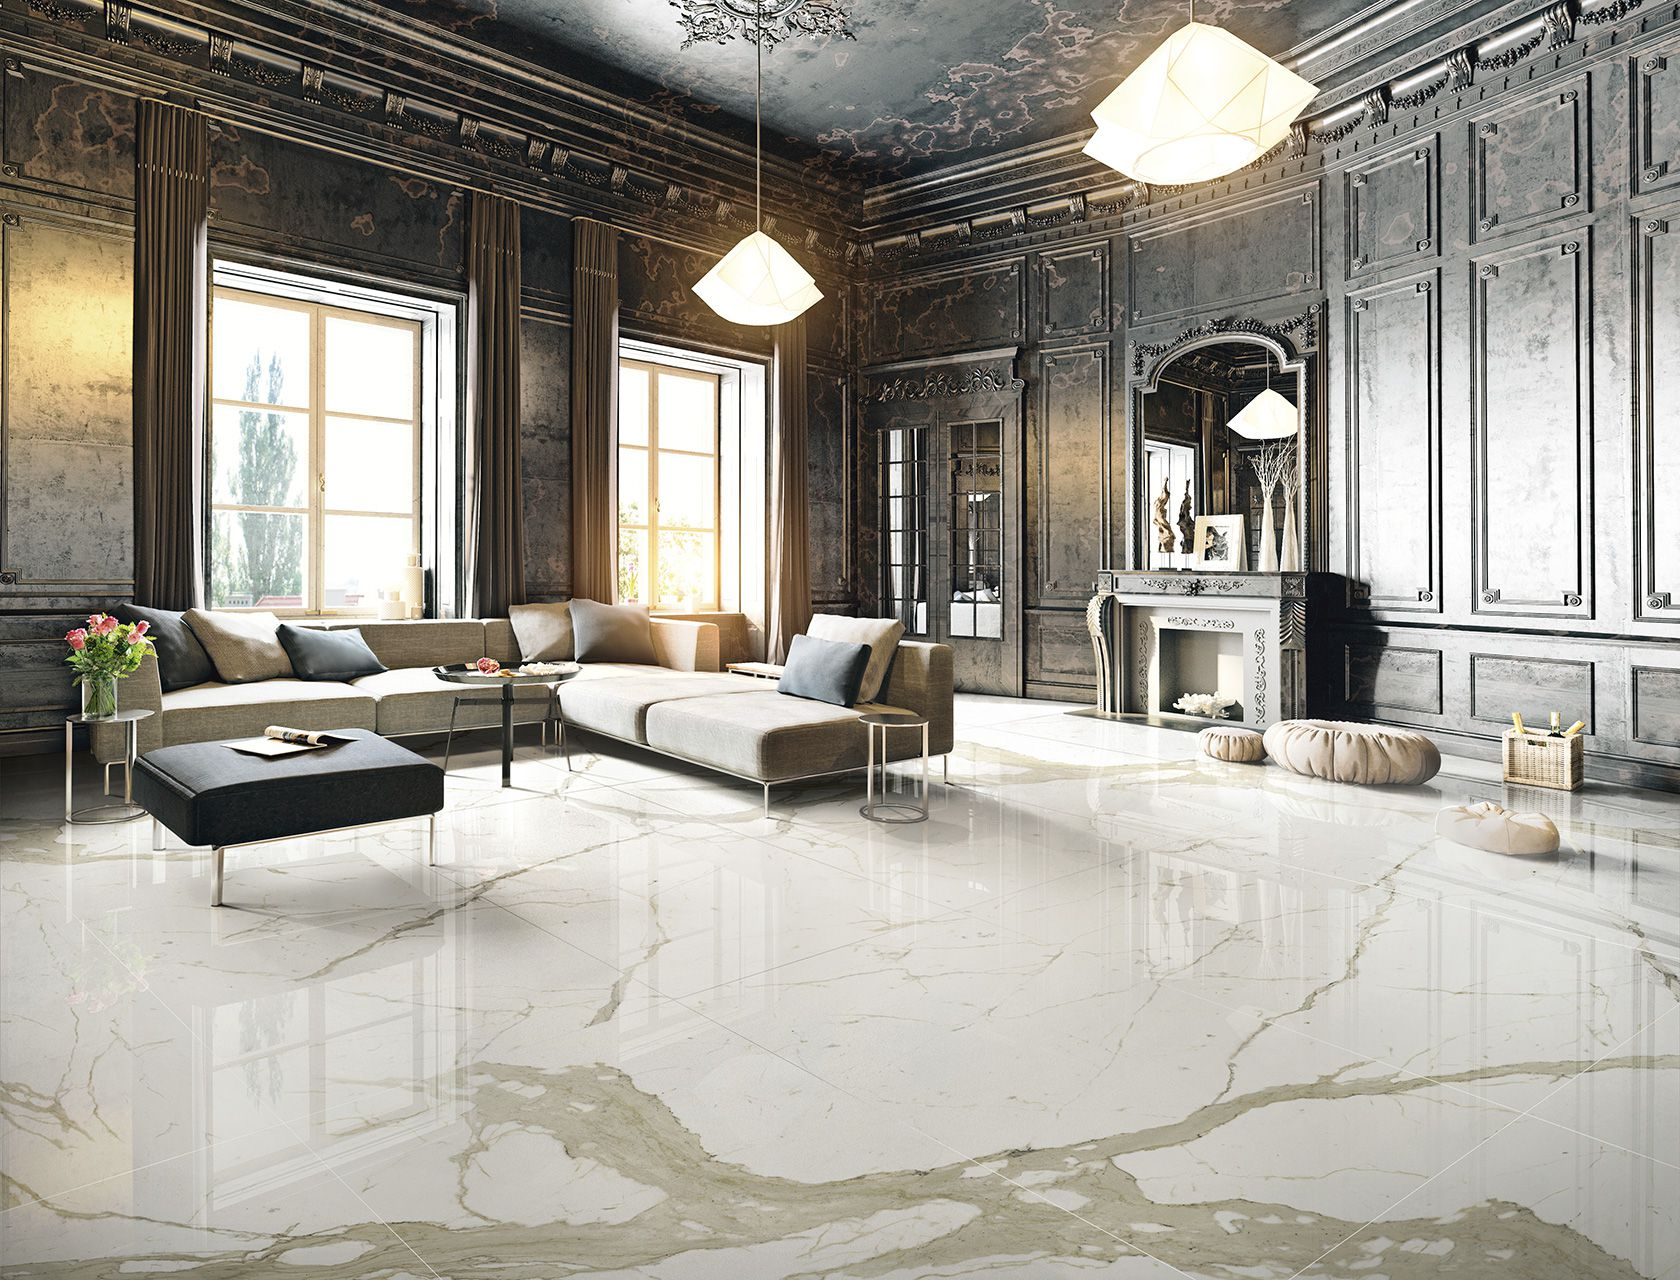 Piastrelle Marmo System 200x100 Marbles Porcelain Stoneware Marble Effect Flooring For Indoor